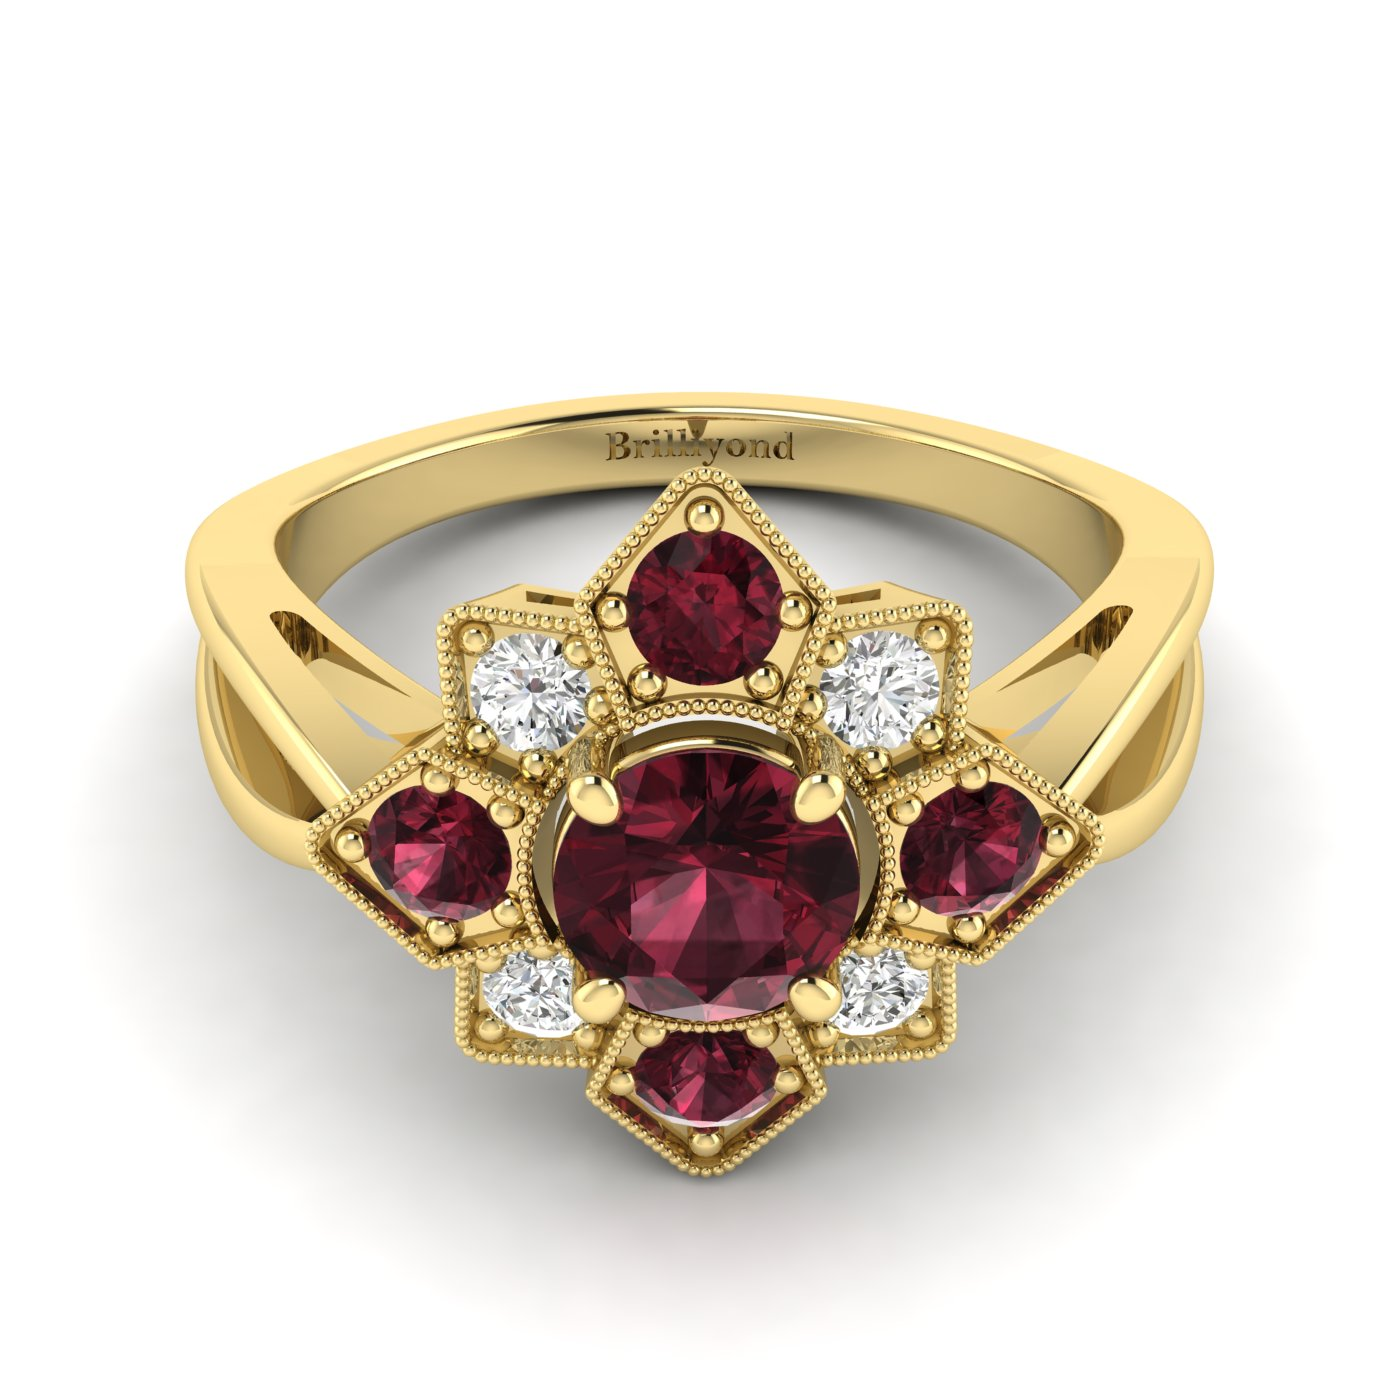 18k Yellow Gold Engagement Ring with CZ and Garnet Gemstones